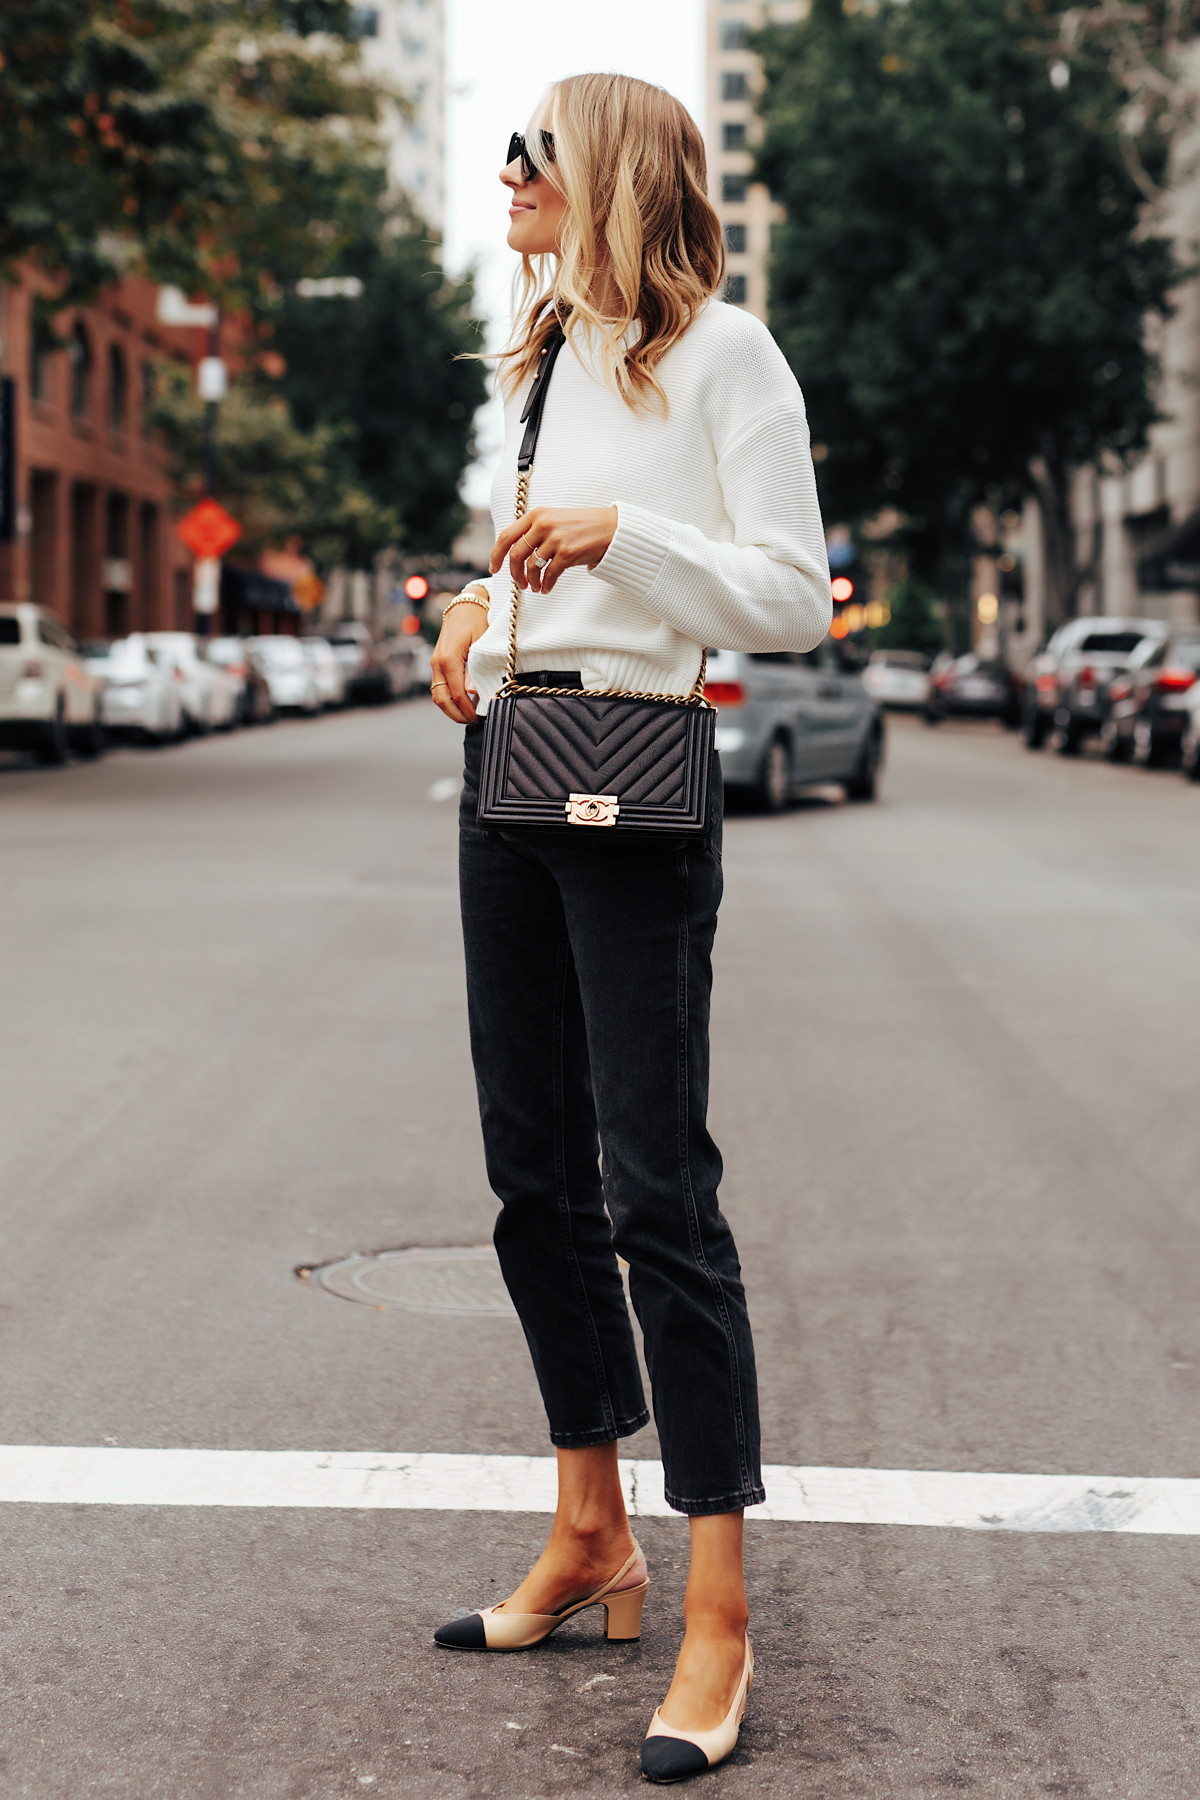 Fashion Jackson Wearing Everlane White Crewneck Sweater Everlane Black Cropped Jeans Chanel Slingbacks Chanel Black Boy Bag 1